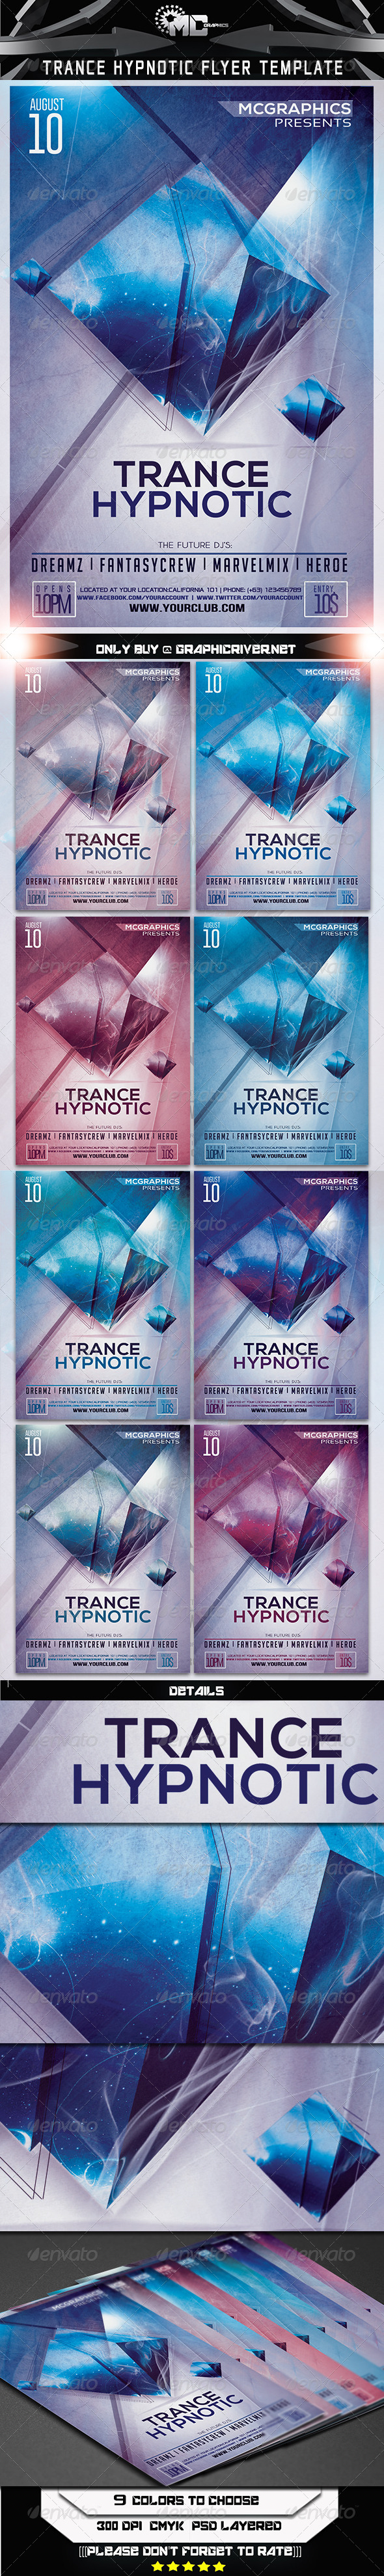 Trance Hypnotic Flyer Template - Clubs & Parties Events